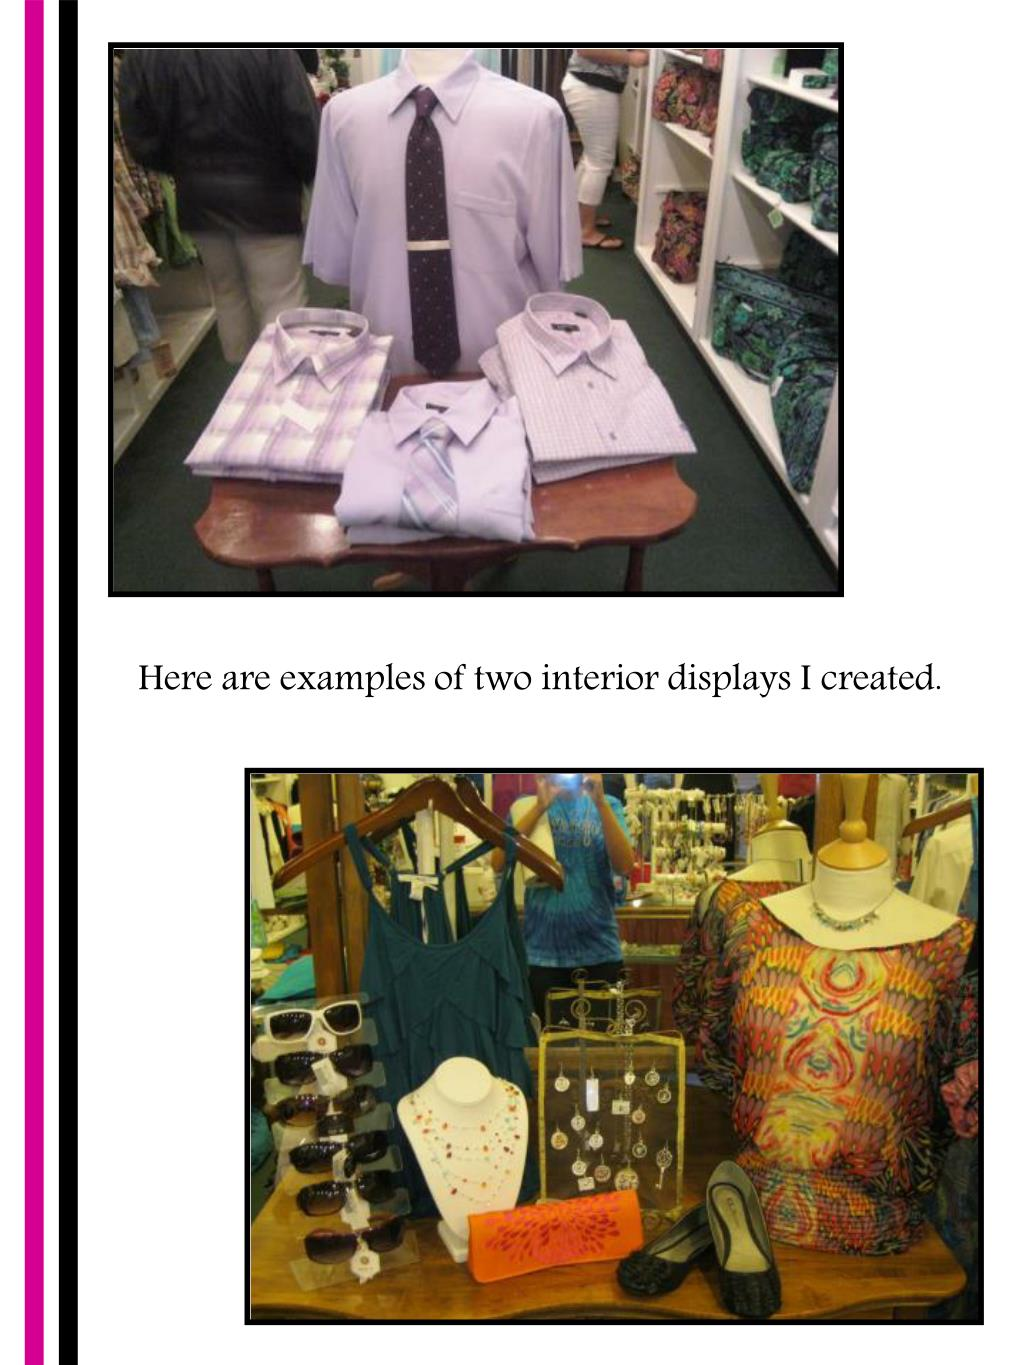 Here are examples of two interior displays I created.